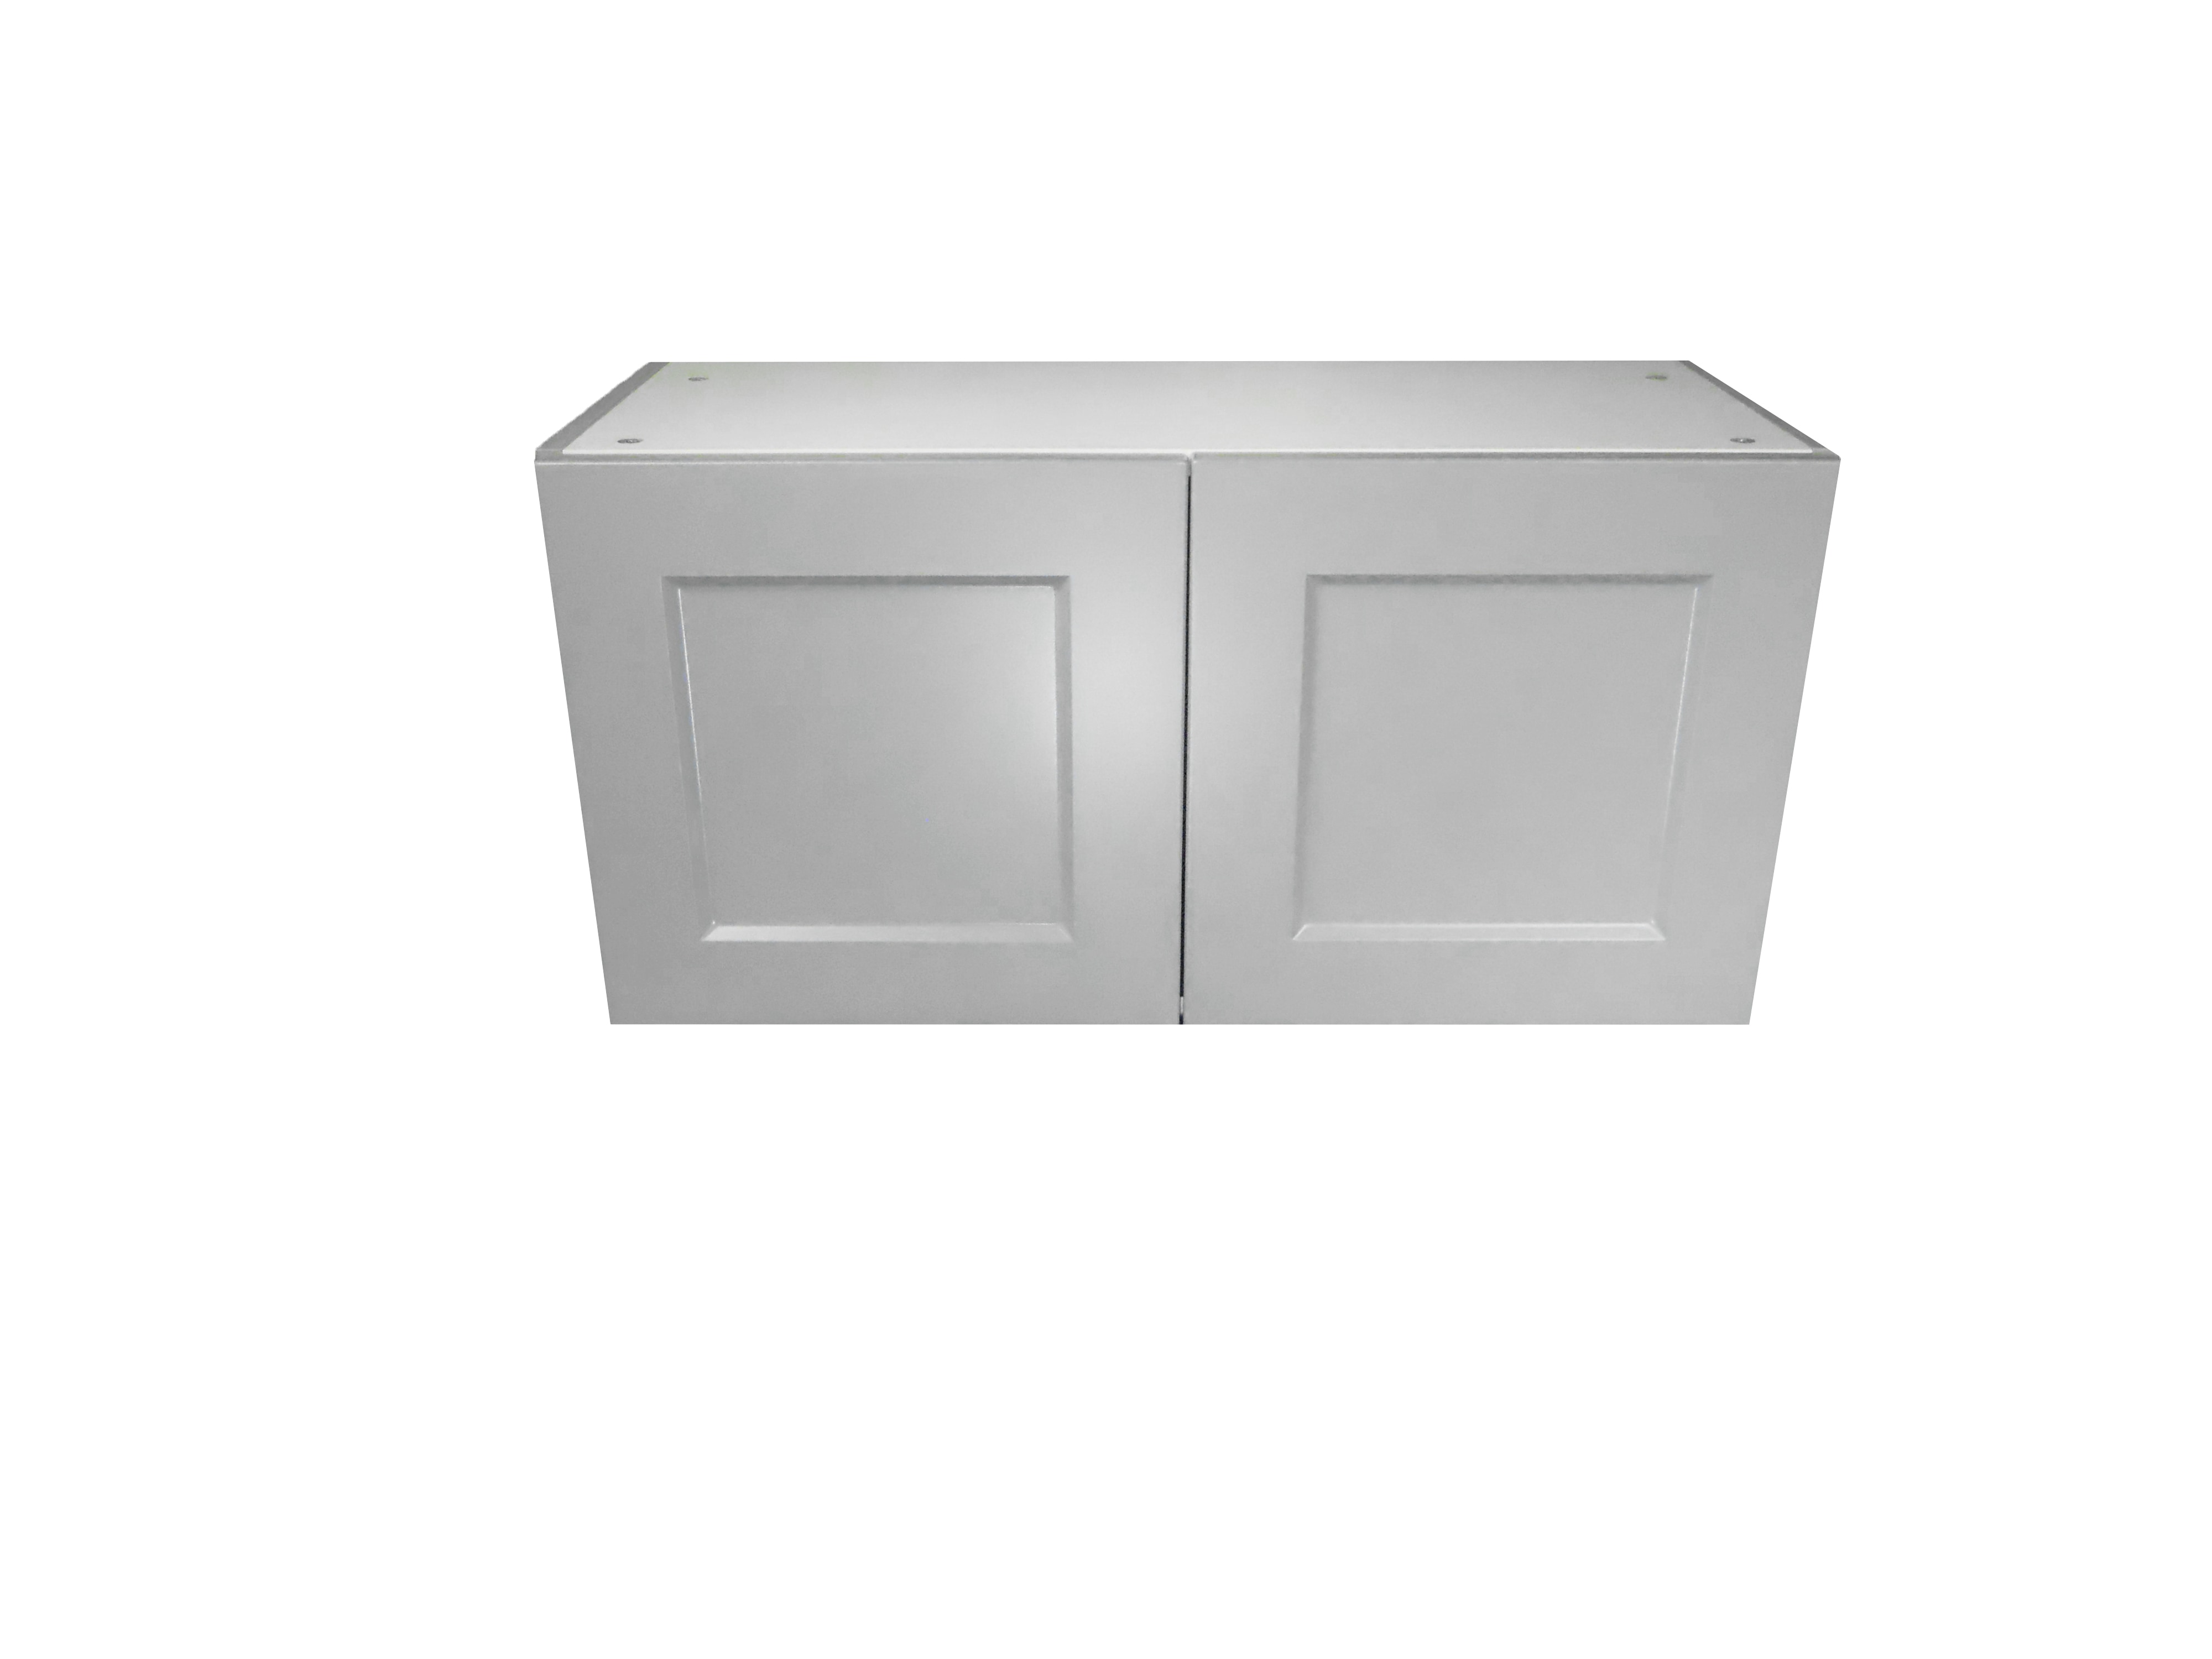 Appliance Wall Cabinet with 2 Doors / Whistler Grey / Flat Panel Grey / 30x15 Whistler Grey 0